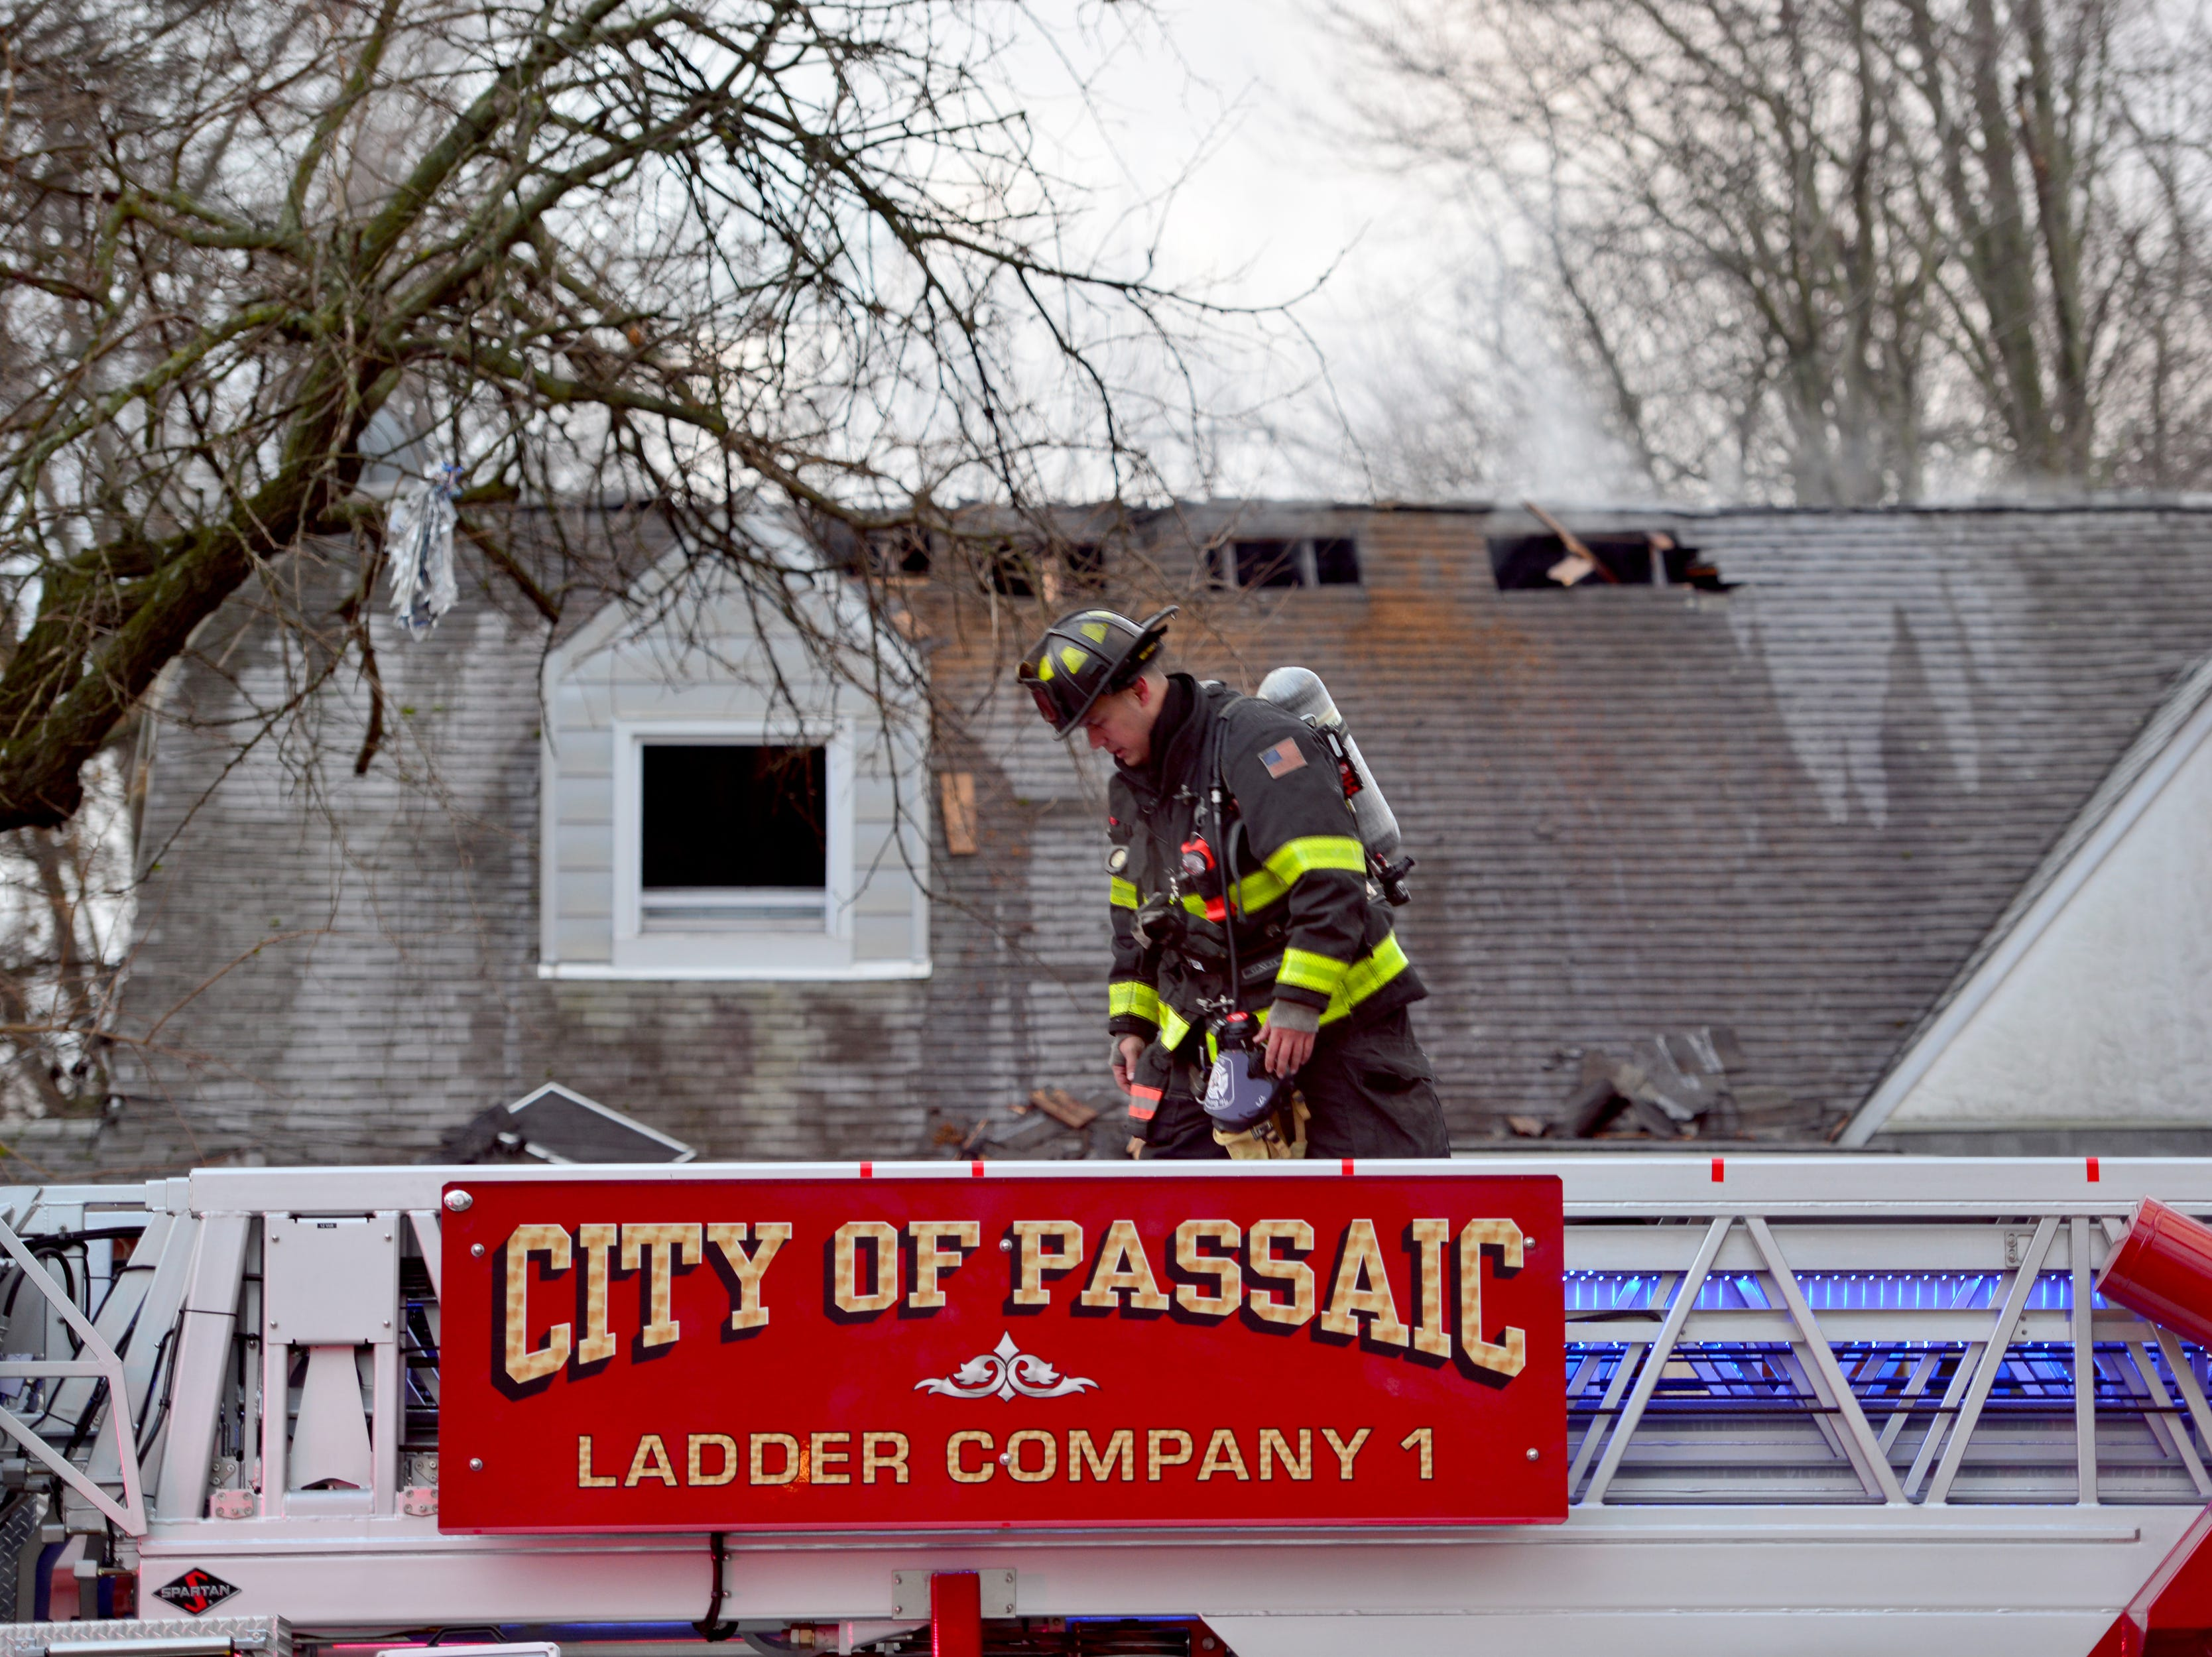 A volunteer Rutherford firefighter saw smoke coming from out a house as he was driving to work on Union Ave and went to investigate, but saw nobody at the scene in Passaic, on Monday December 31, 2018. He called 911 ands began banging on the front door of the house to wake up the residents who were sleeping as the attic was on fire according to Passaic Deputy Fire Chief Kevin Burgos. No injuries were reported to the three residents in the house or firefighters.